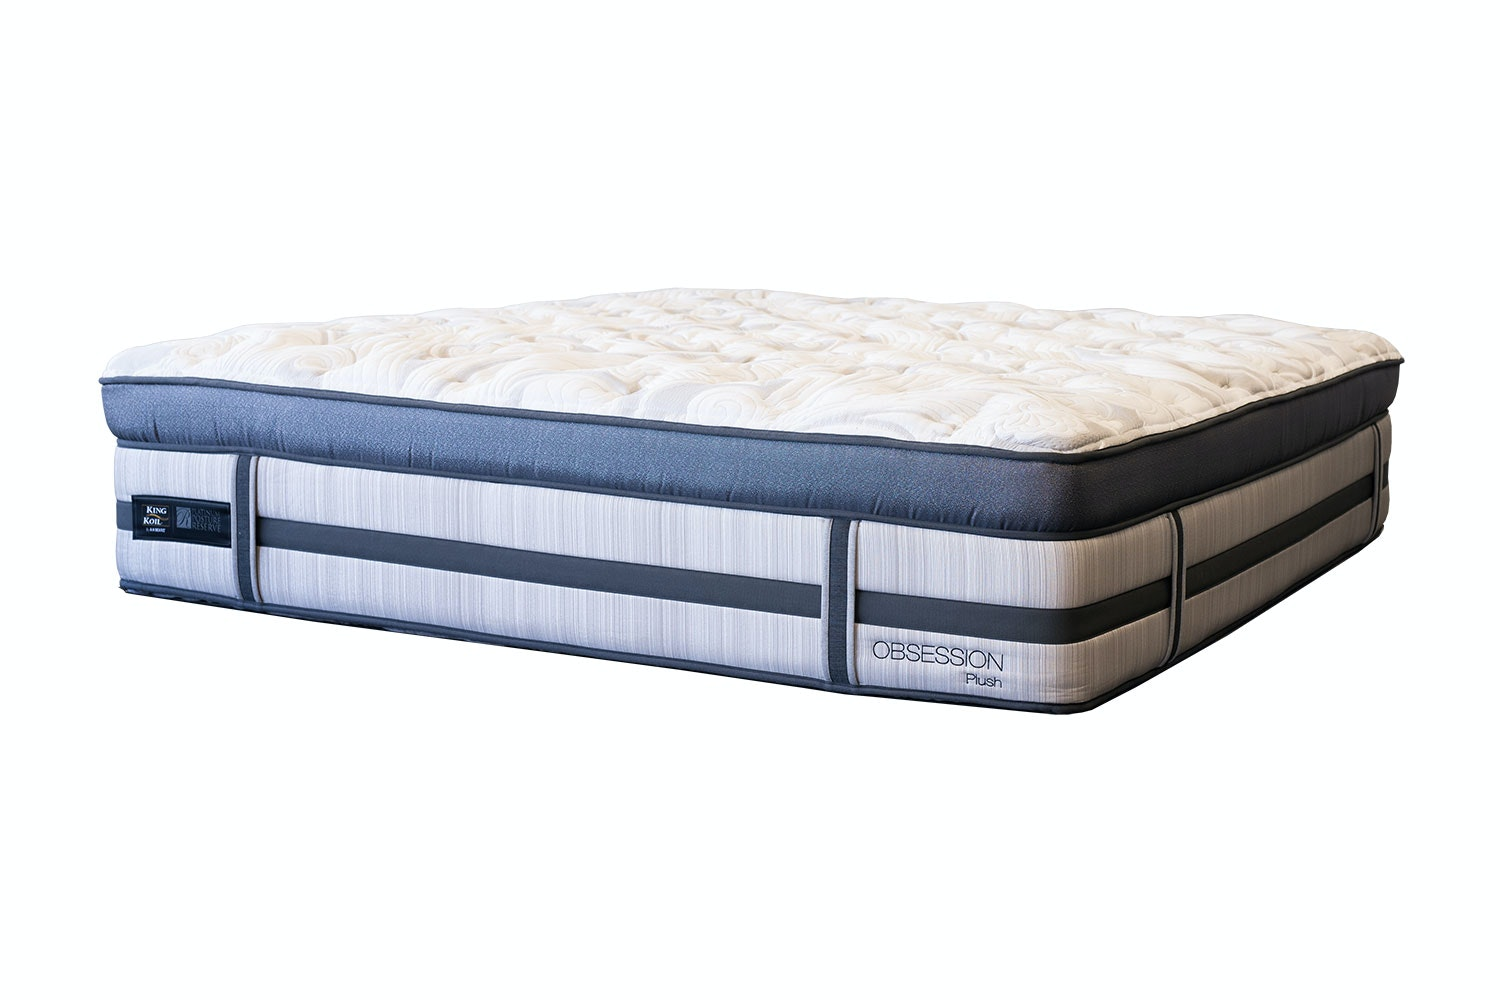 Obsession Plush Super King Mattress by King Koil